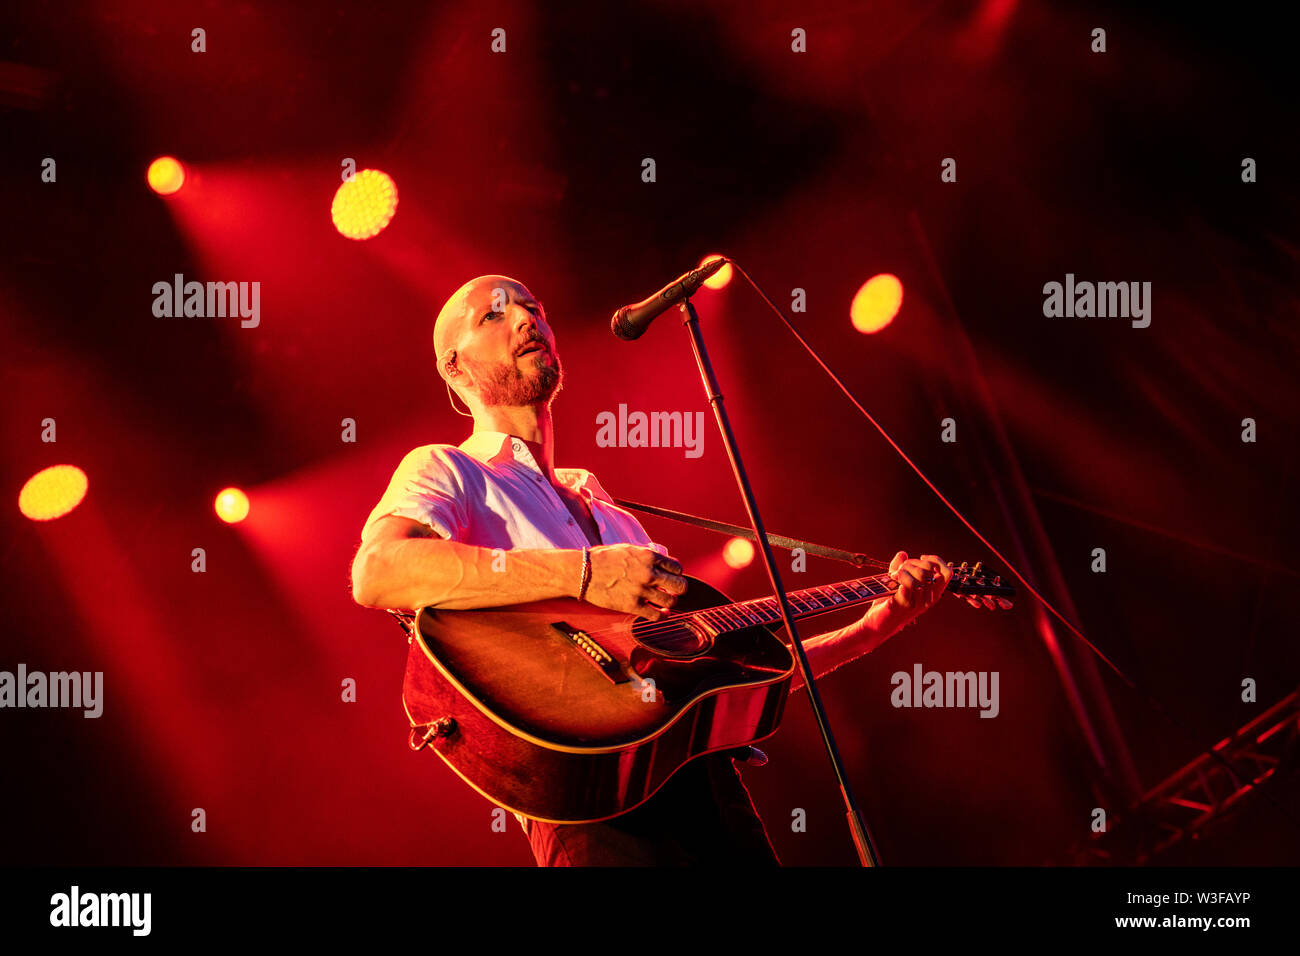 Bergen, Norway - June 13th, 2019. The Norwegian rock Madrugada performs a live concert during the Norwegian music festival Bergenfest 2019 in Bergen. Here singer and songwriter Sivert Høyem is seen live on stage. (Photo credit: Gonzales Photo - Jarle H. Moe). - Stock Image